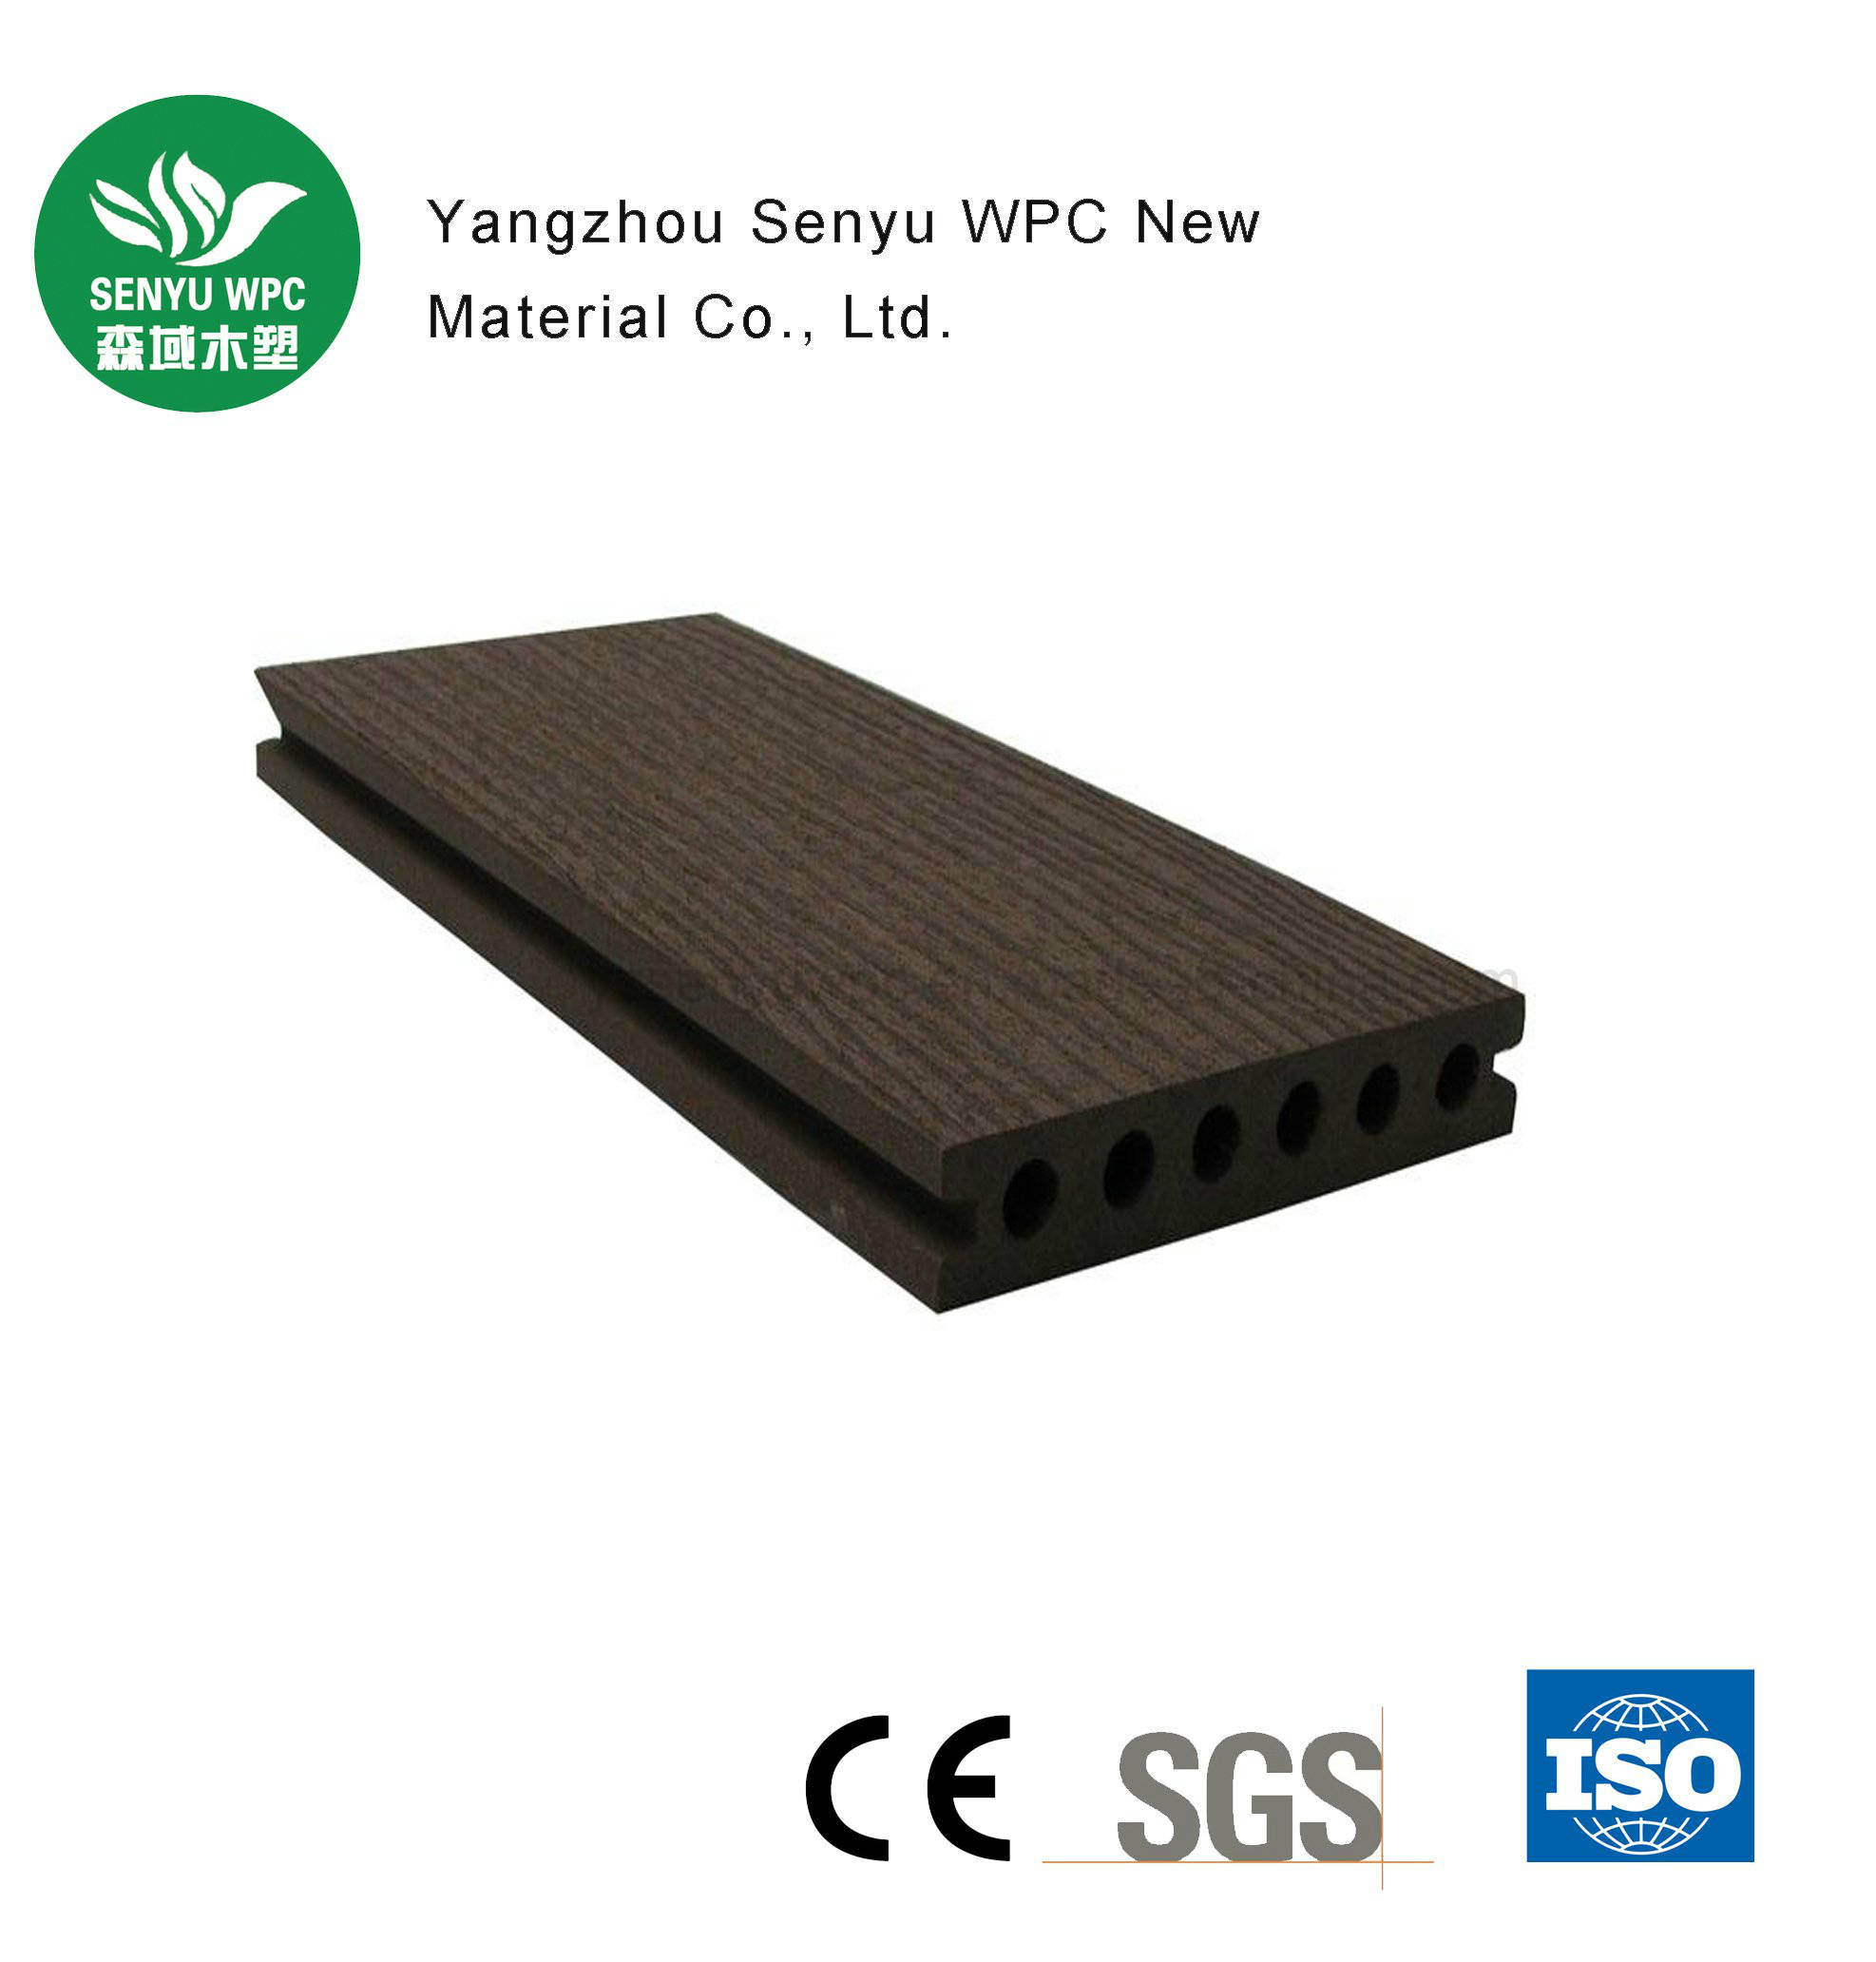 Outdoor WPC Decking with CE